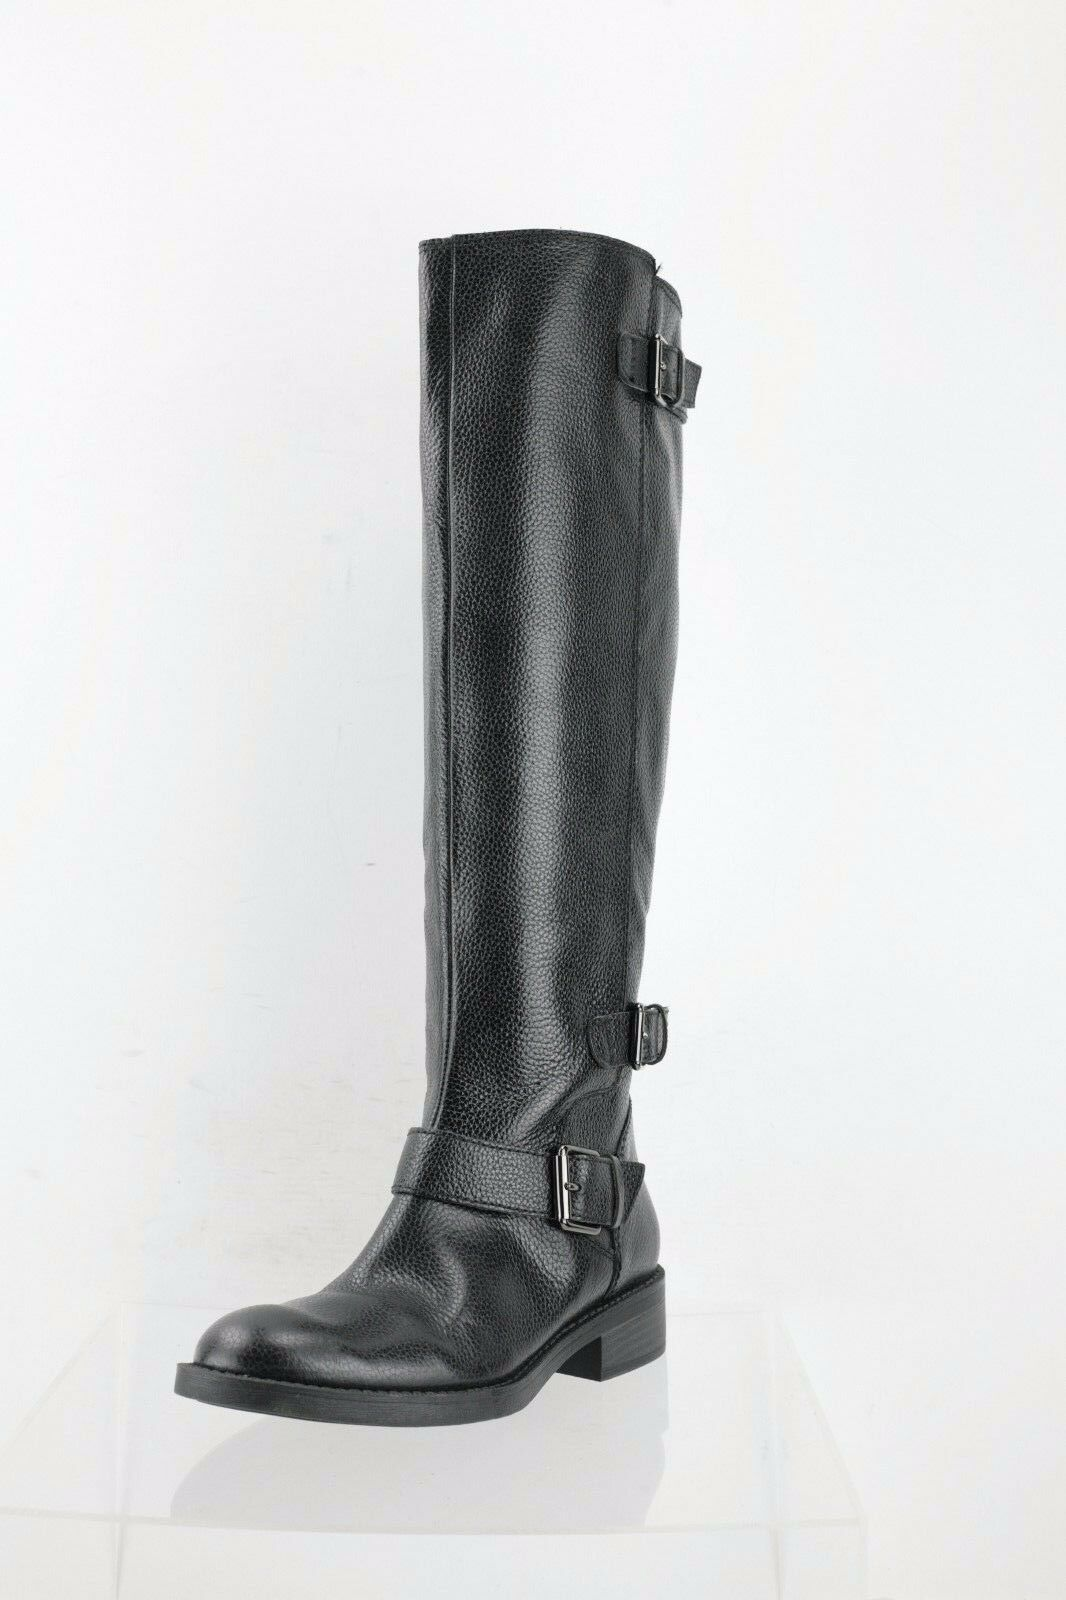 Enzo Enzo Enzo Angiolini Sayin Black Leather Knee High Boots Women's shoes Size 6.5 M NEW 7c047c